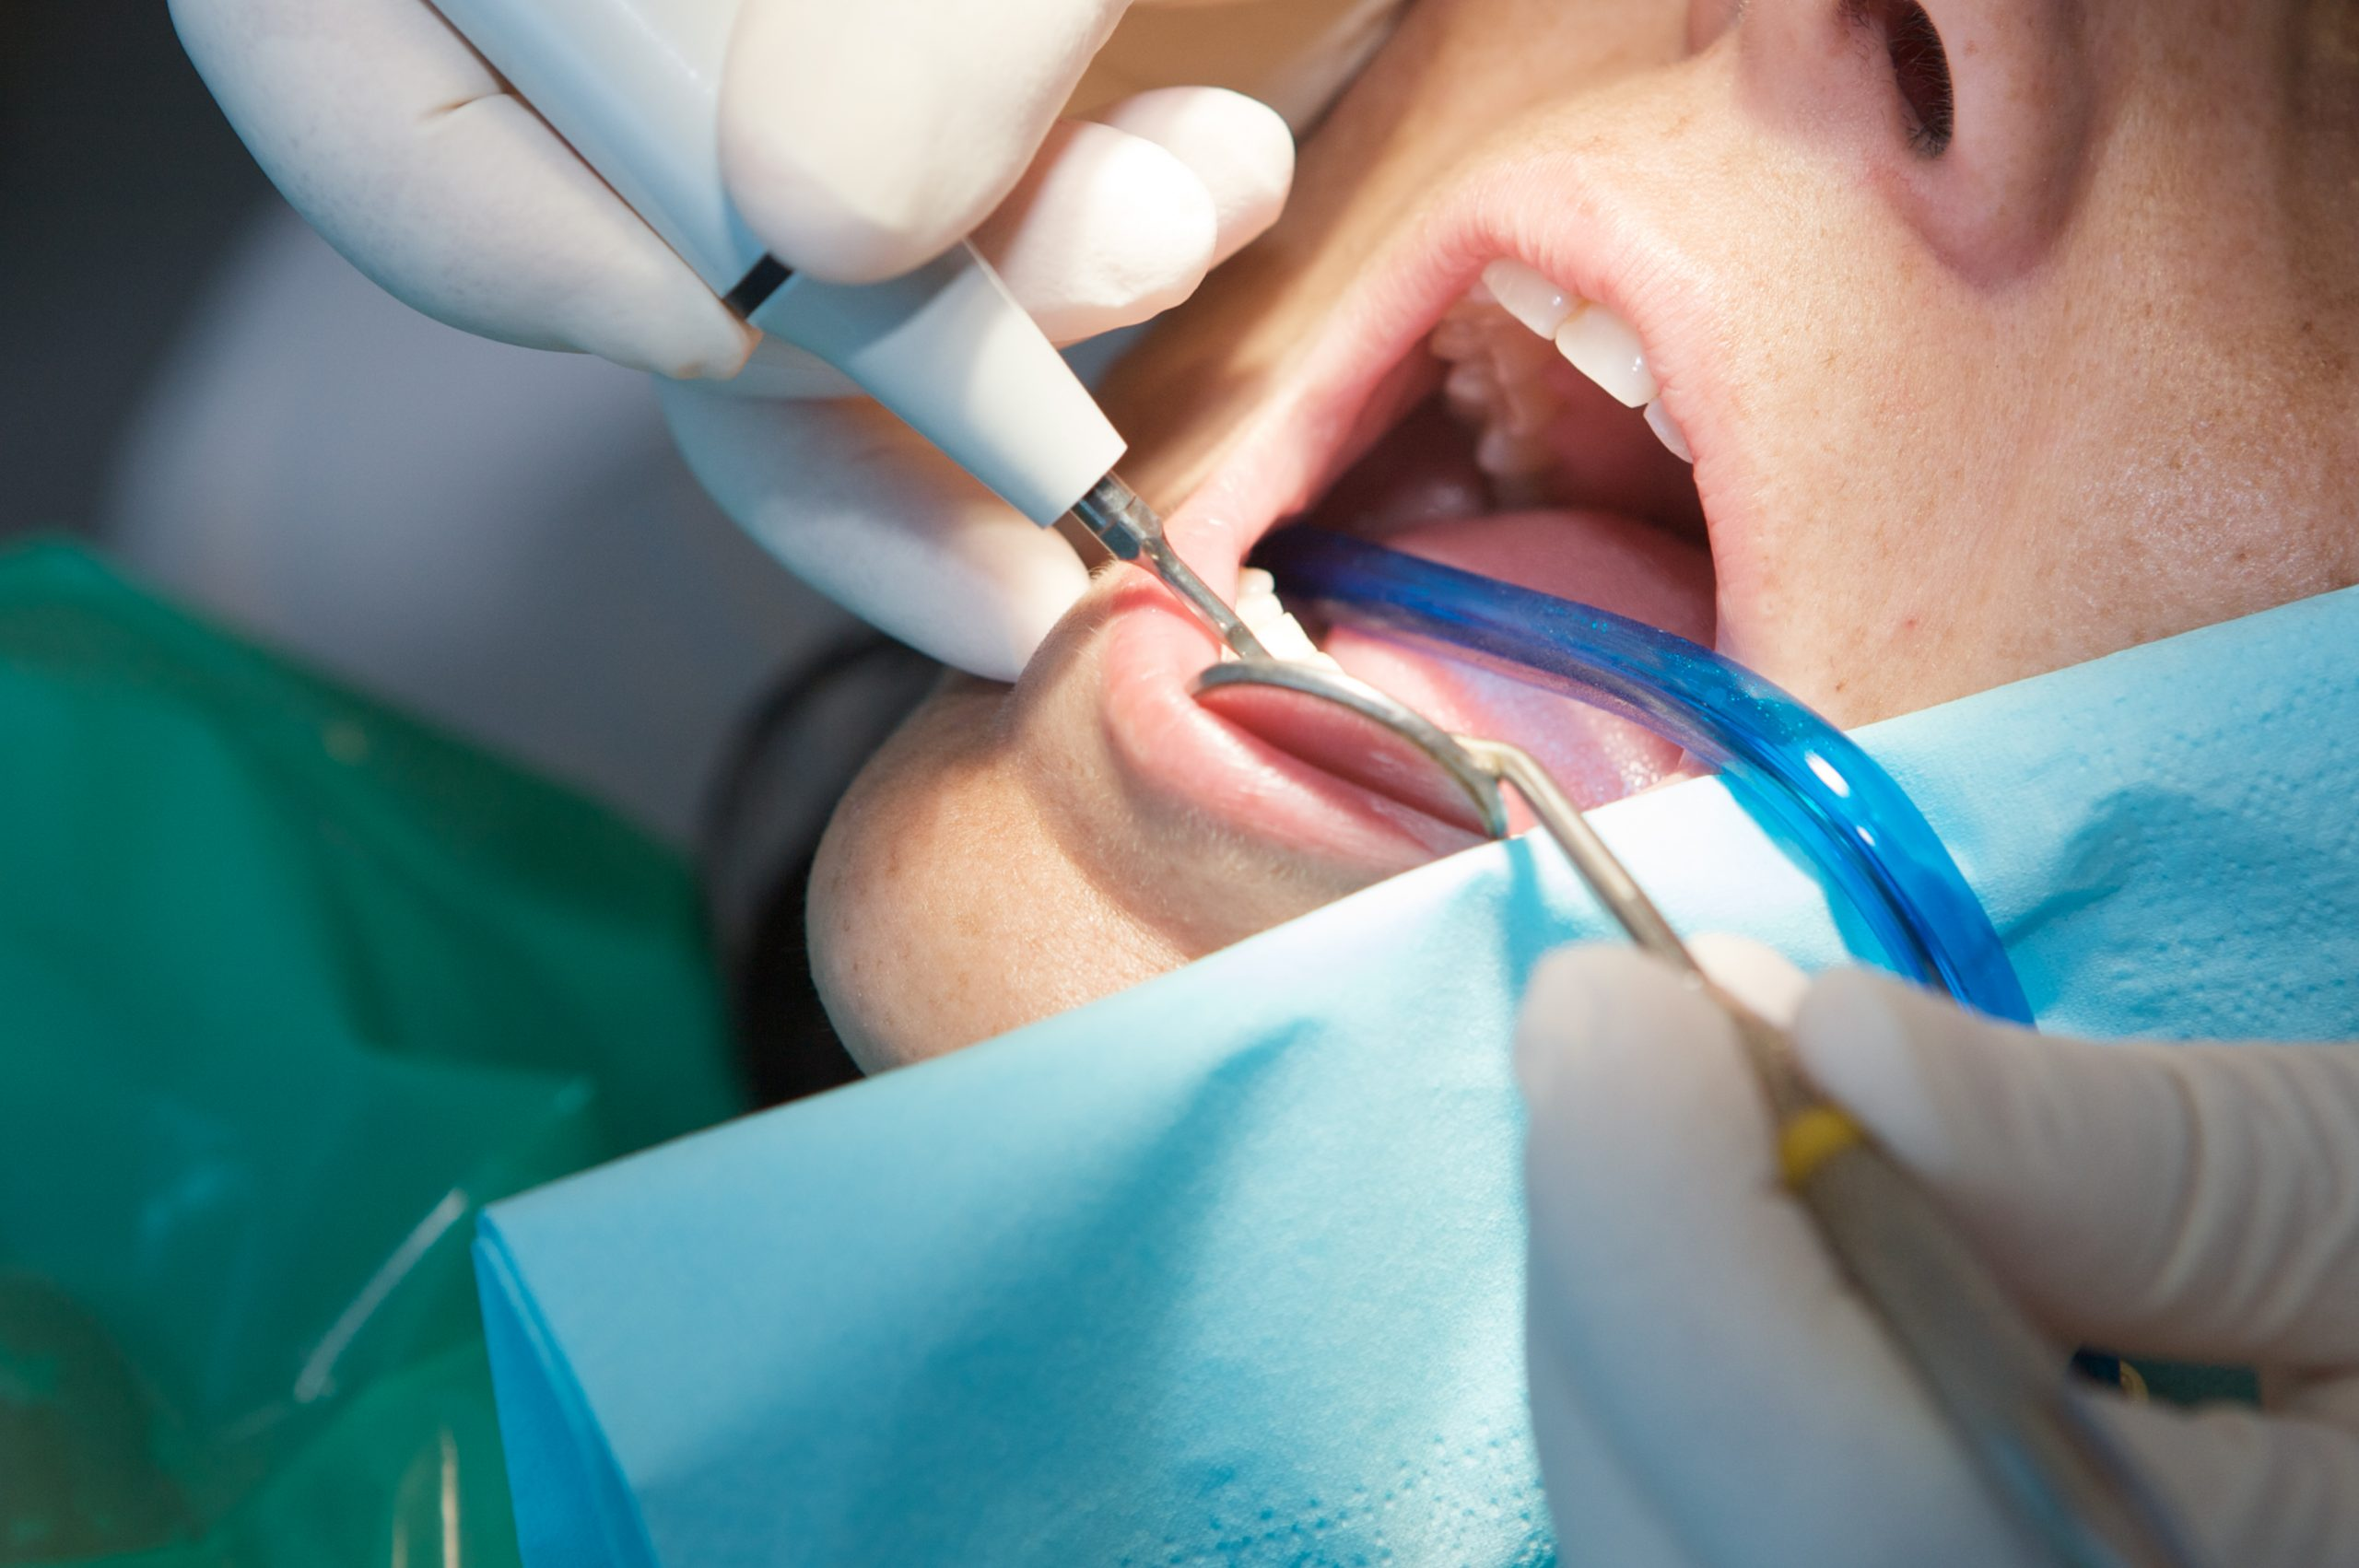 Announcement from the American Dental Association – Dental practices remain open amid COVID-19 surge